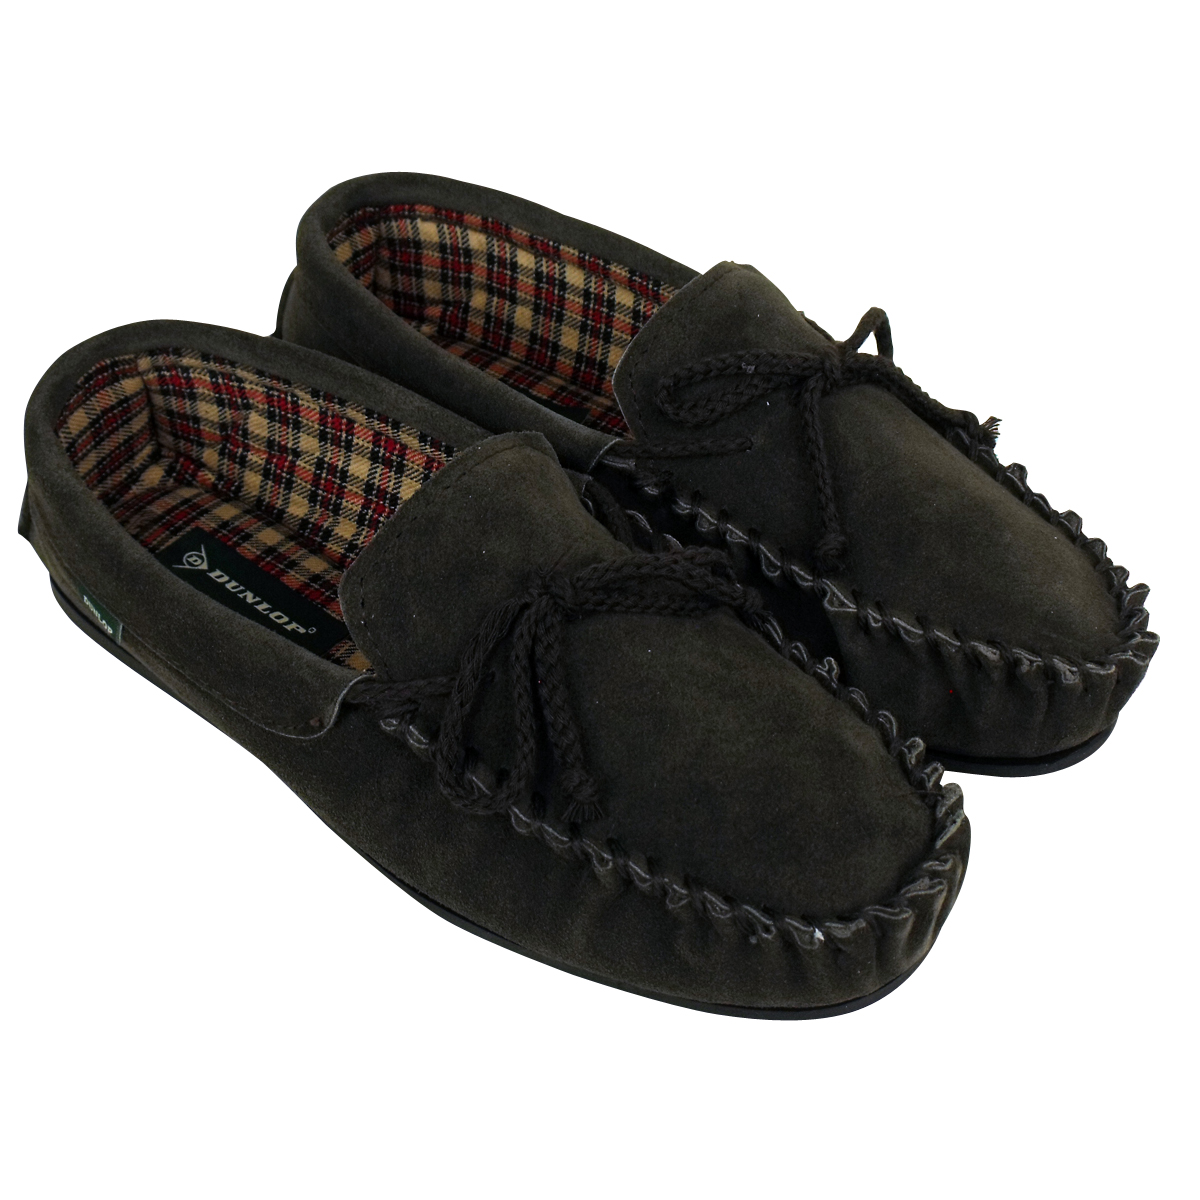 Gents Shoes Size On Ebay